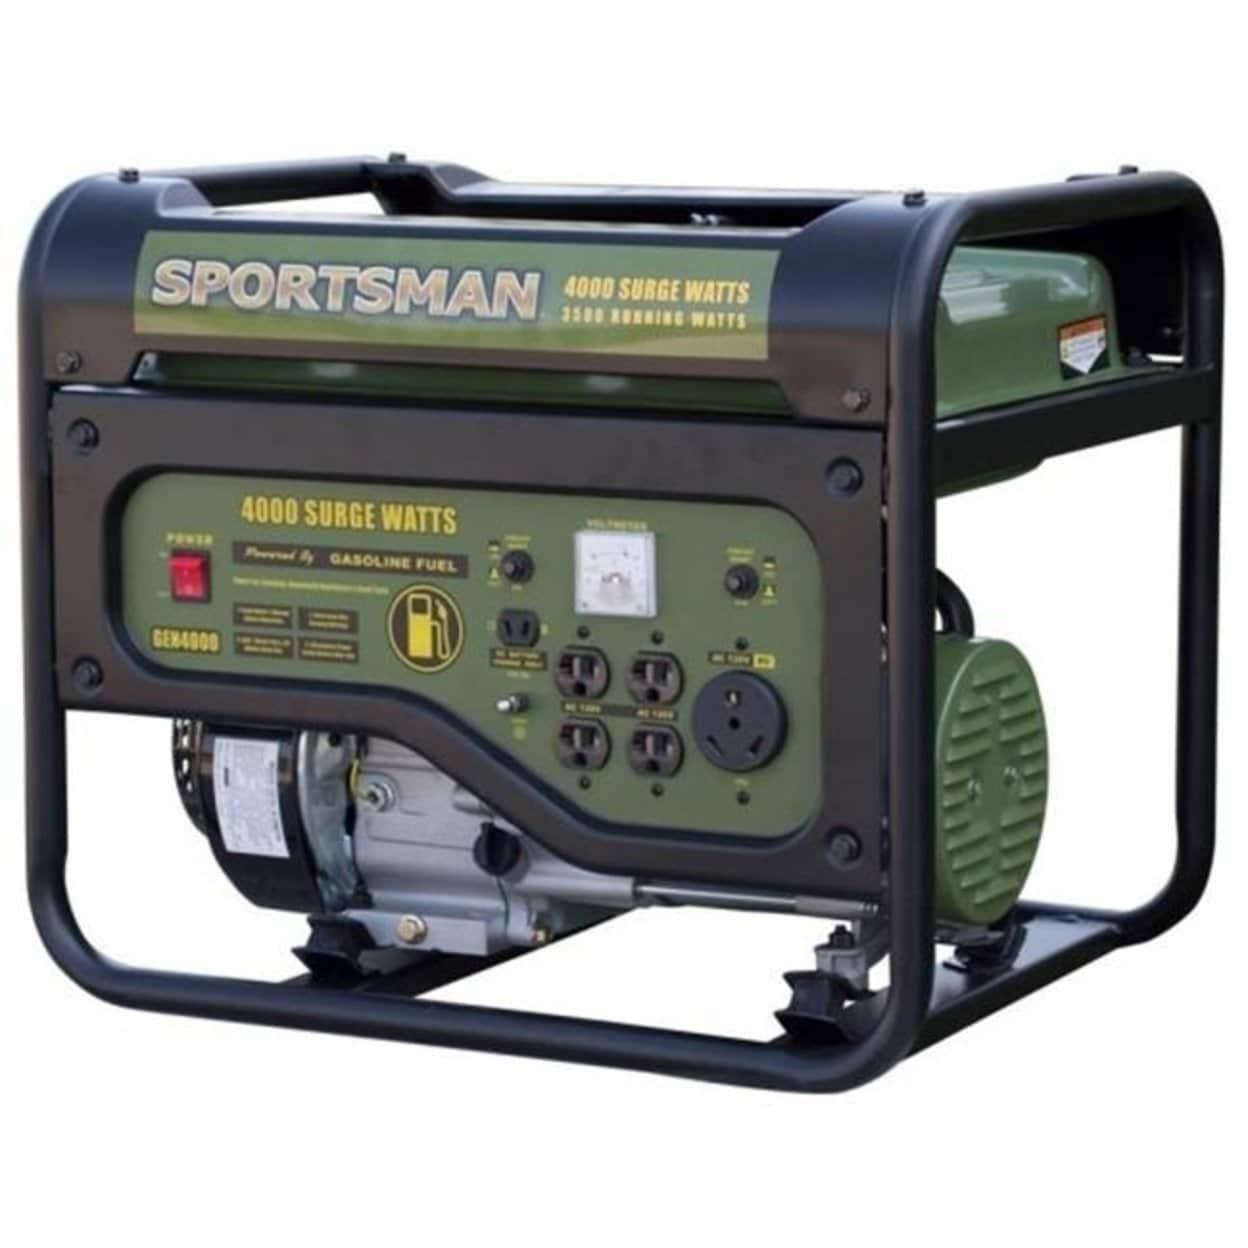 Generators | Find Great Home Improvement Deals Shopping at Overstock